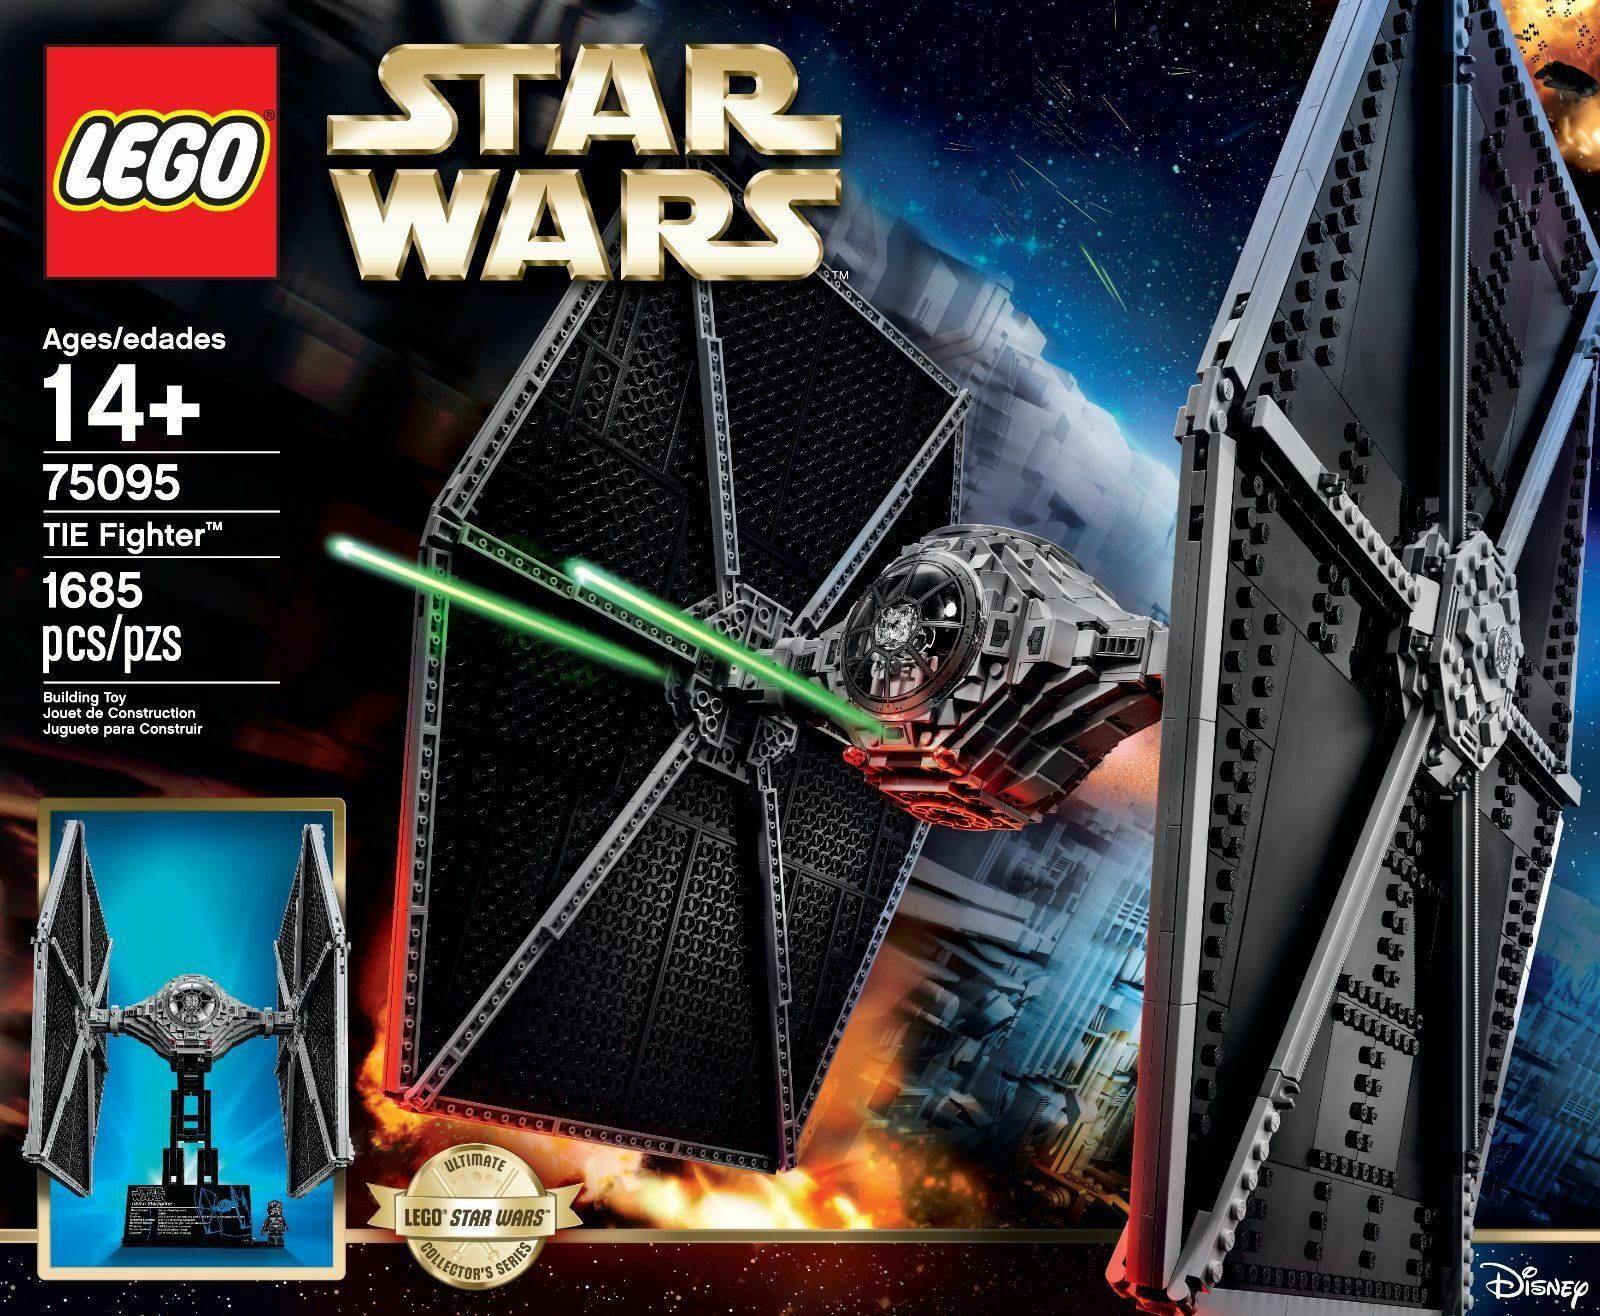 Lego STAR STAR STAR WARS Tie Fighter 75095 New Sealed Box UCS Ultimate Collectors Series 753b0c